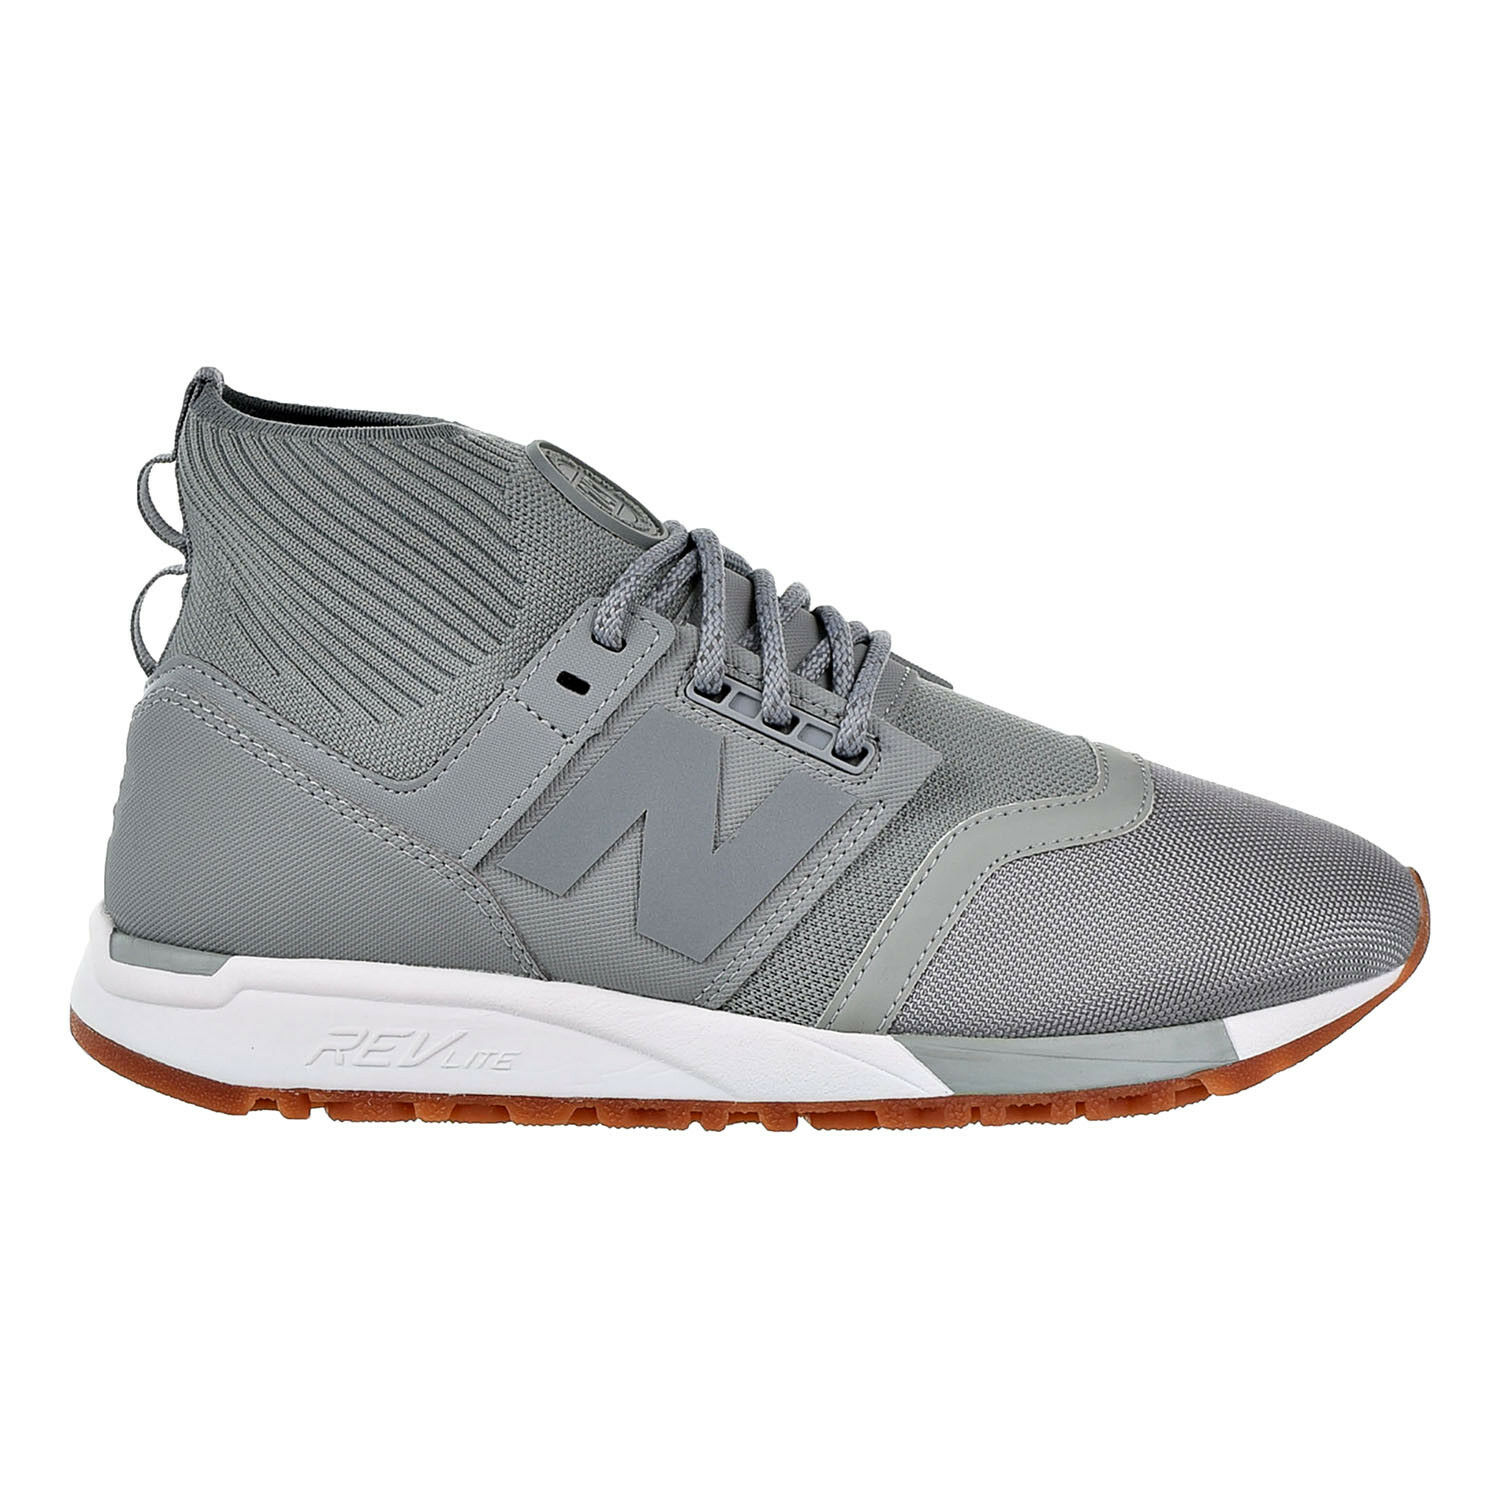 New Balance 247 Men's shoes Grey Gum MRL247OW